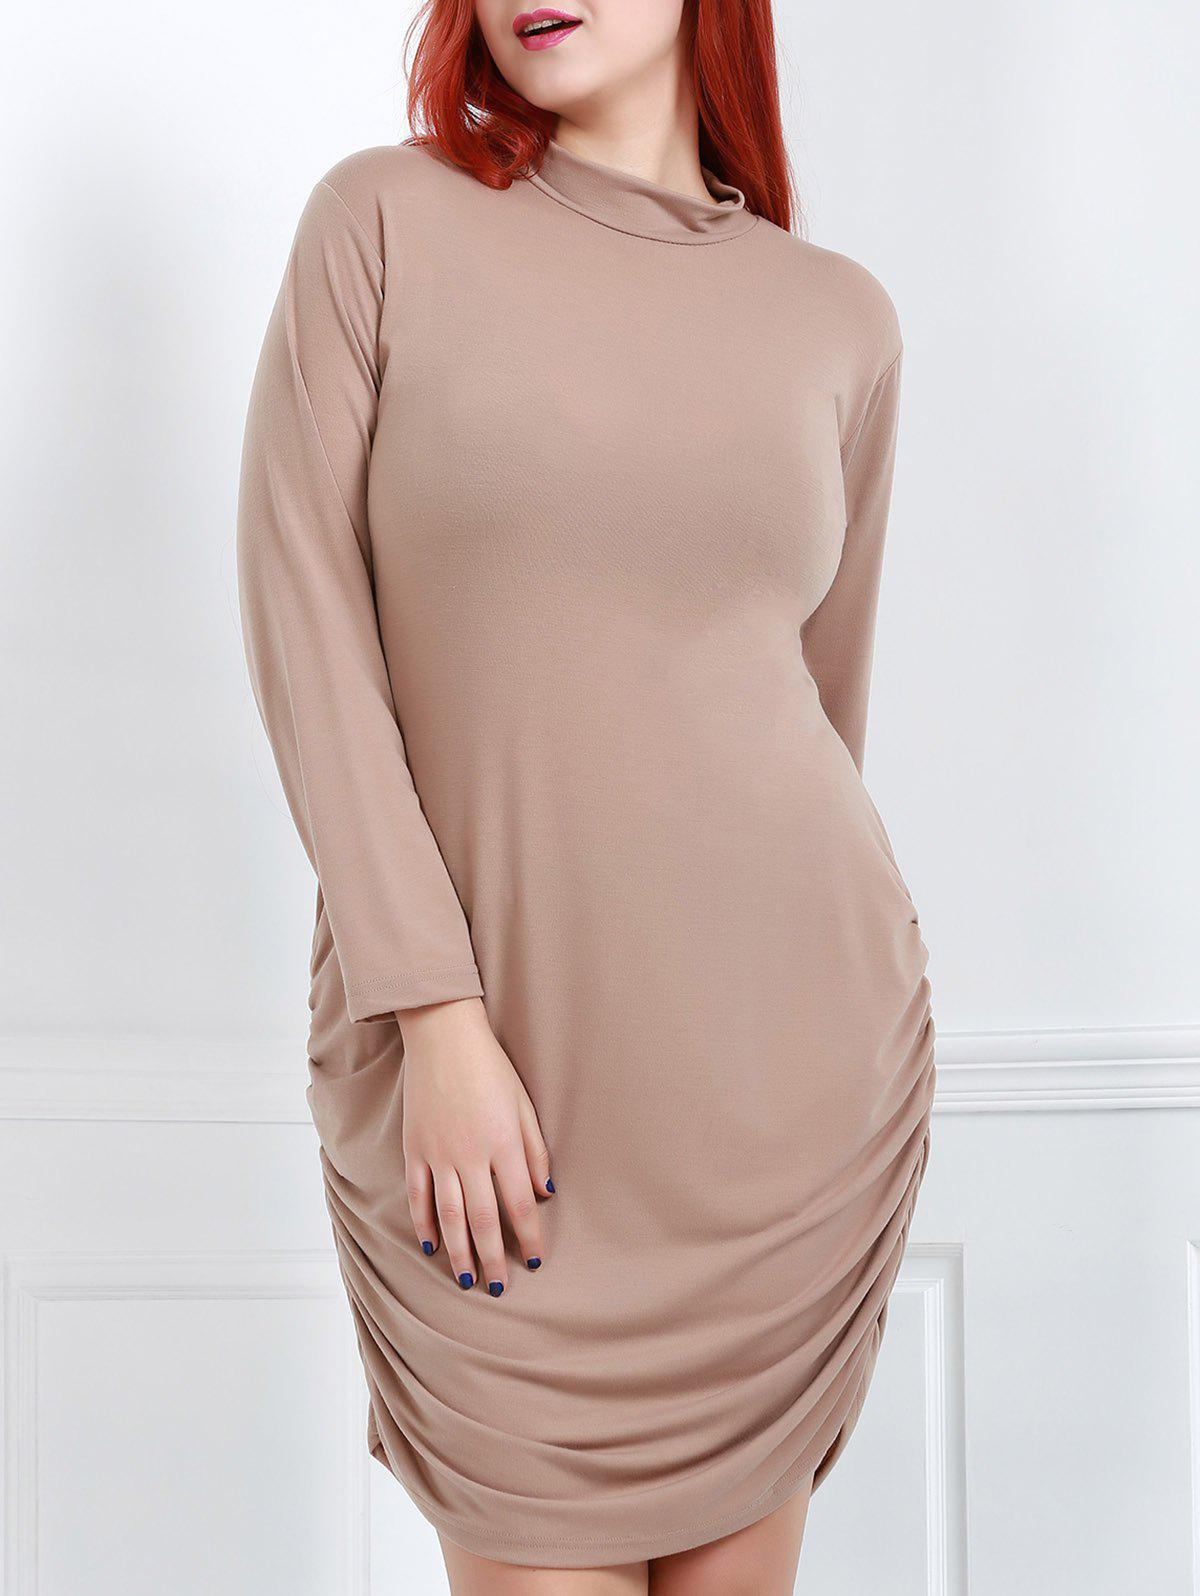 Sexy Turtle Neck Long Sleeve Plus Size Solid Color Women's Dress